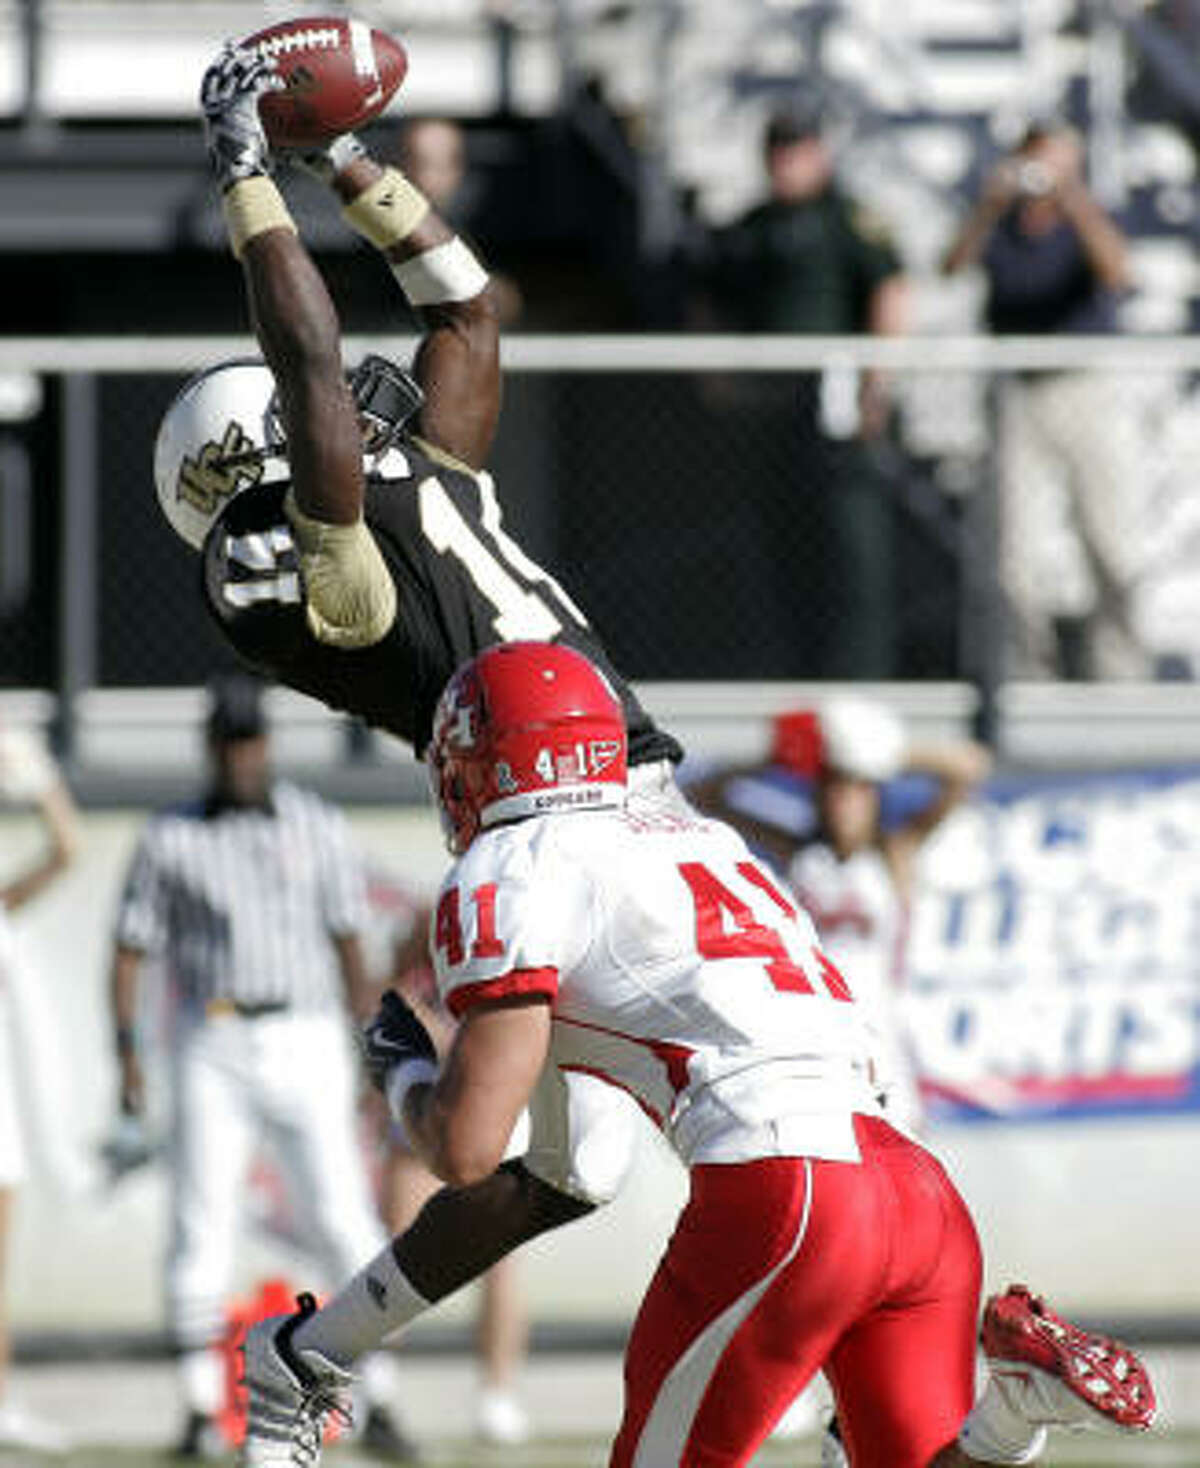 Central Florida receiver Quincy McDuffie grabs a touchdown catch over UH safety Nick Saenz.